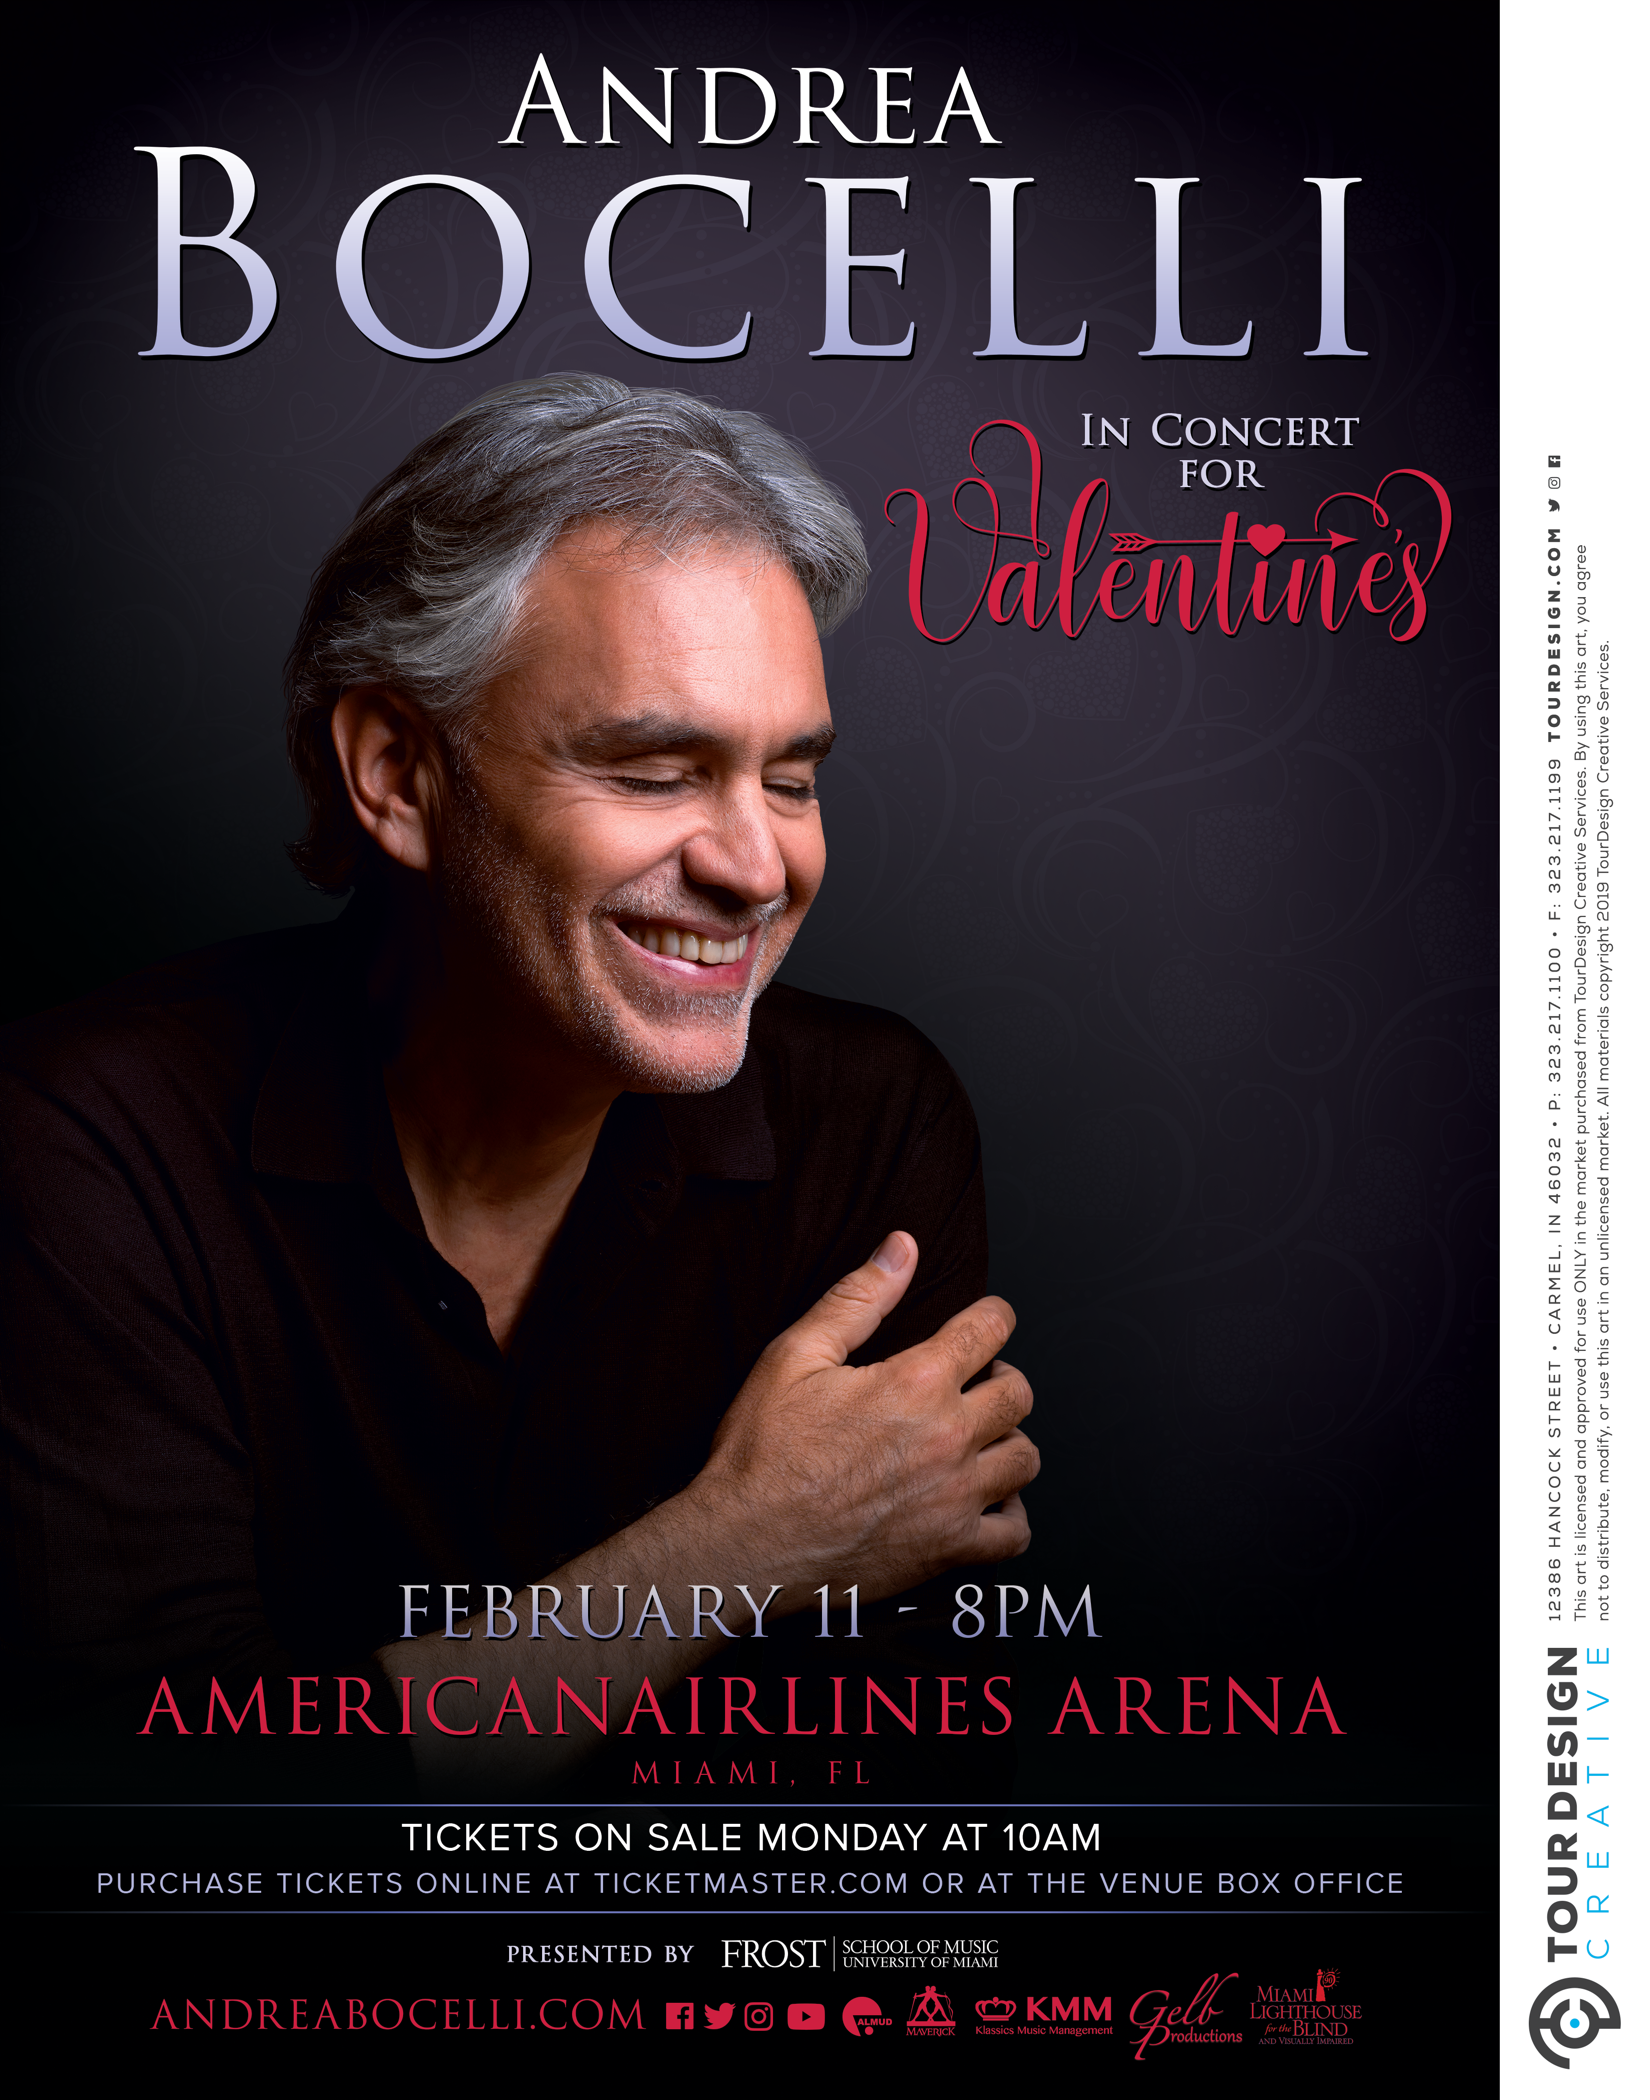 ANDREA BOCELLI ANNOUNCES ANNUAL CONCERT IN CELEBRATION OF VALENTINE'S DAY